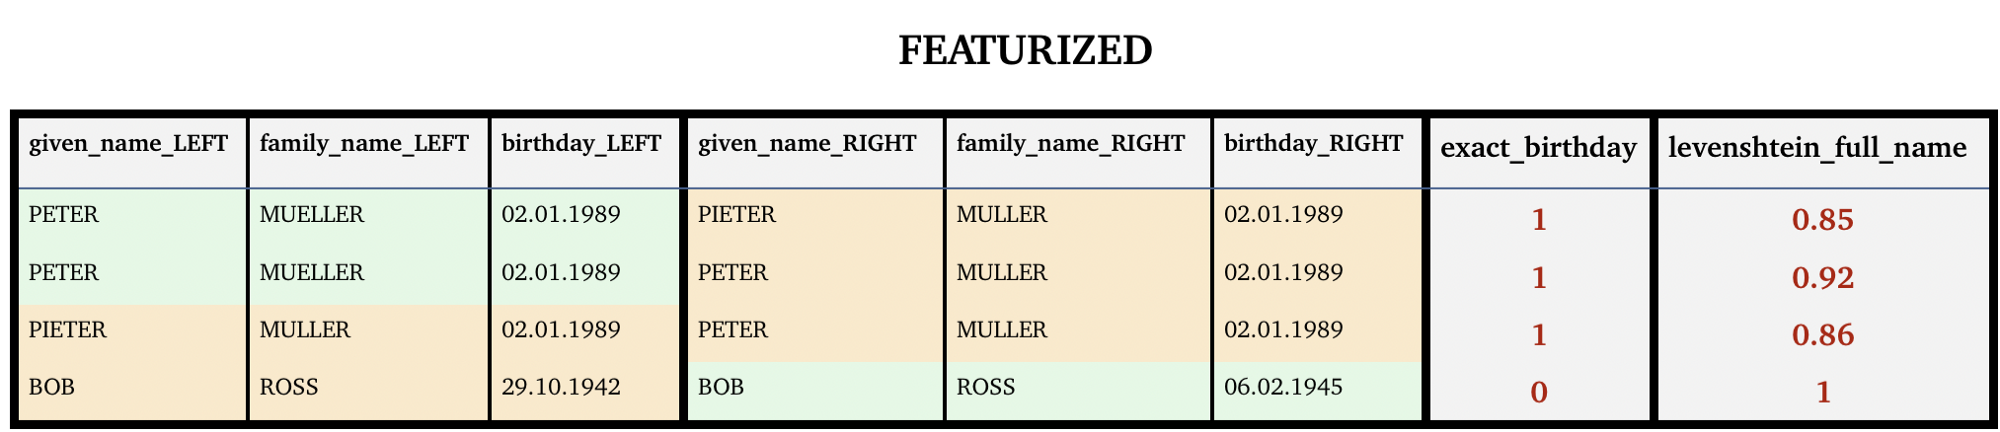 Featurization provides more accurate metrics for record similarities